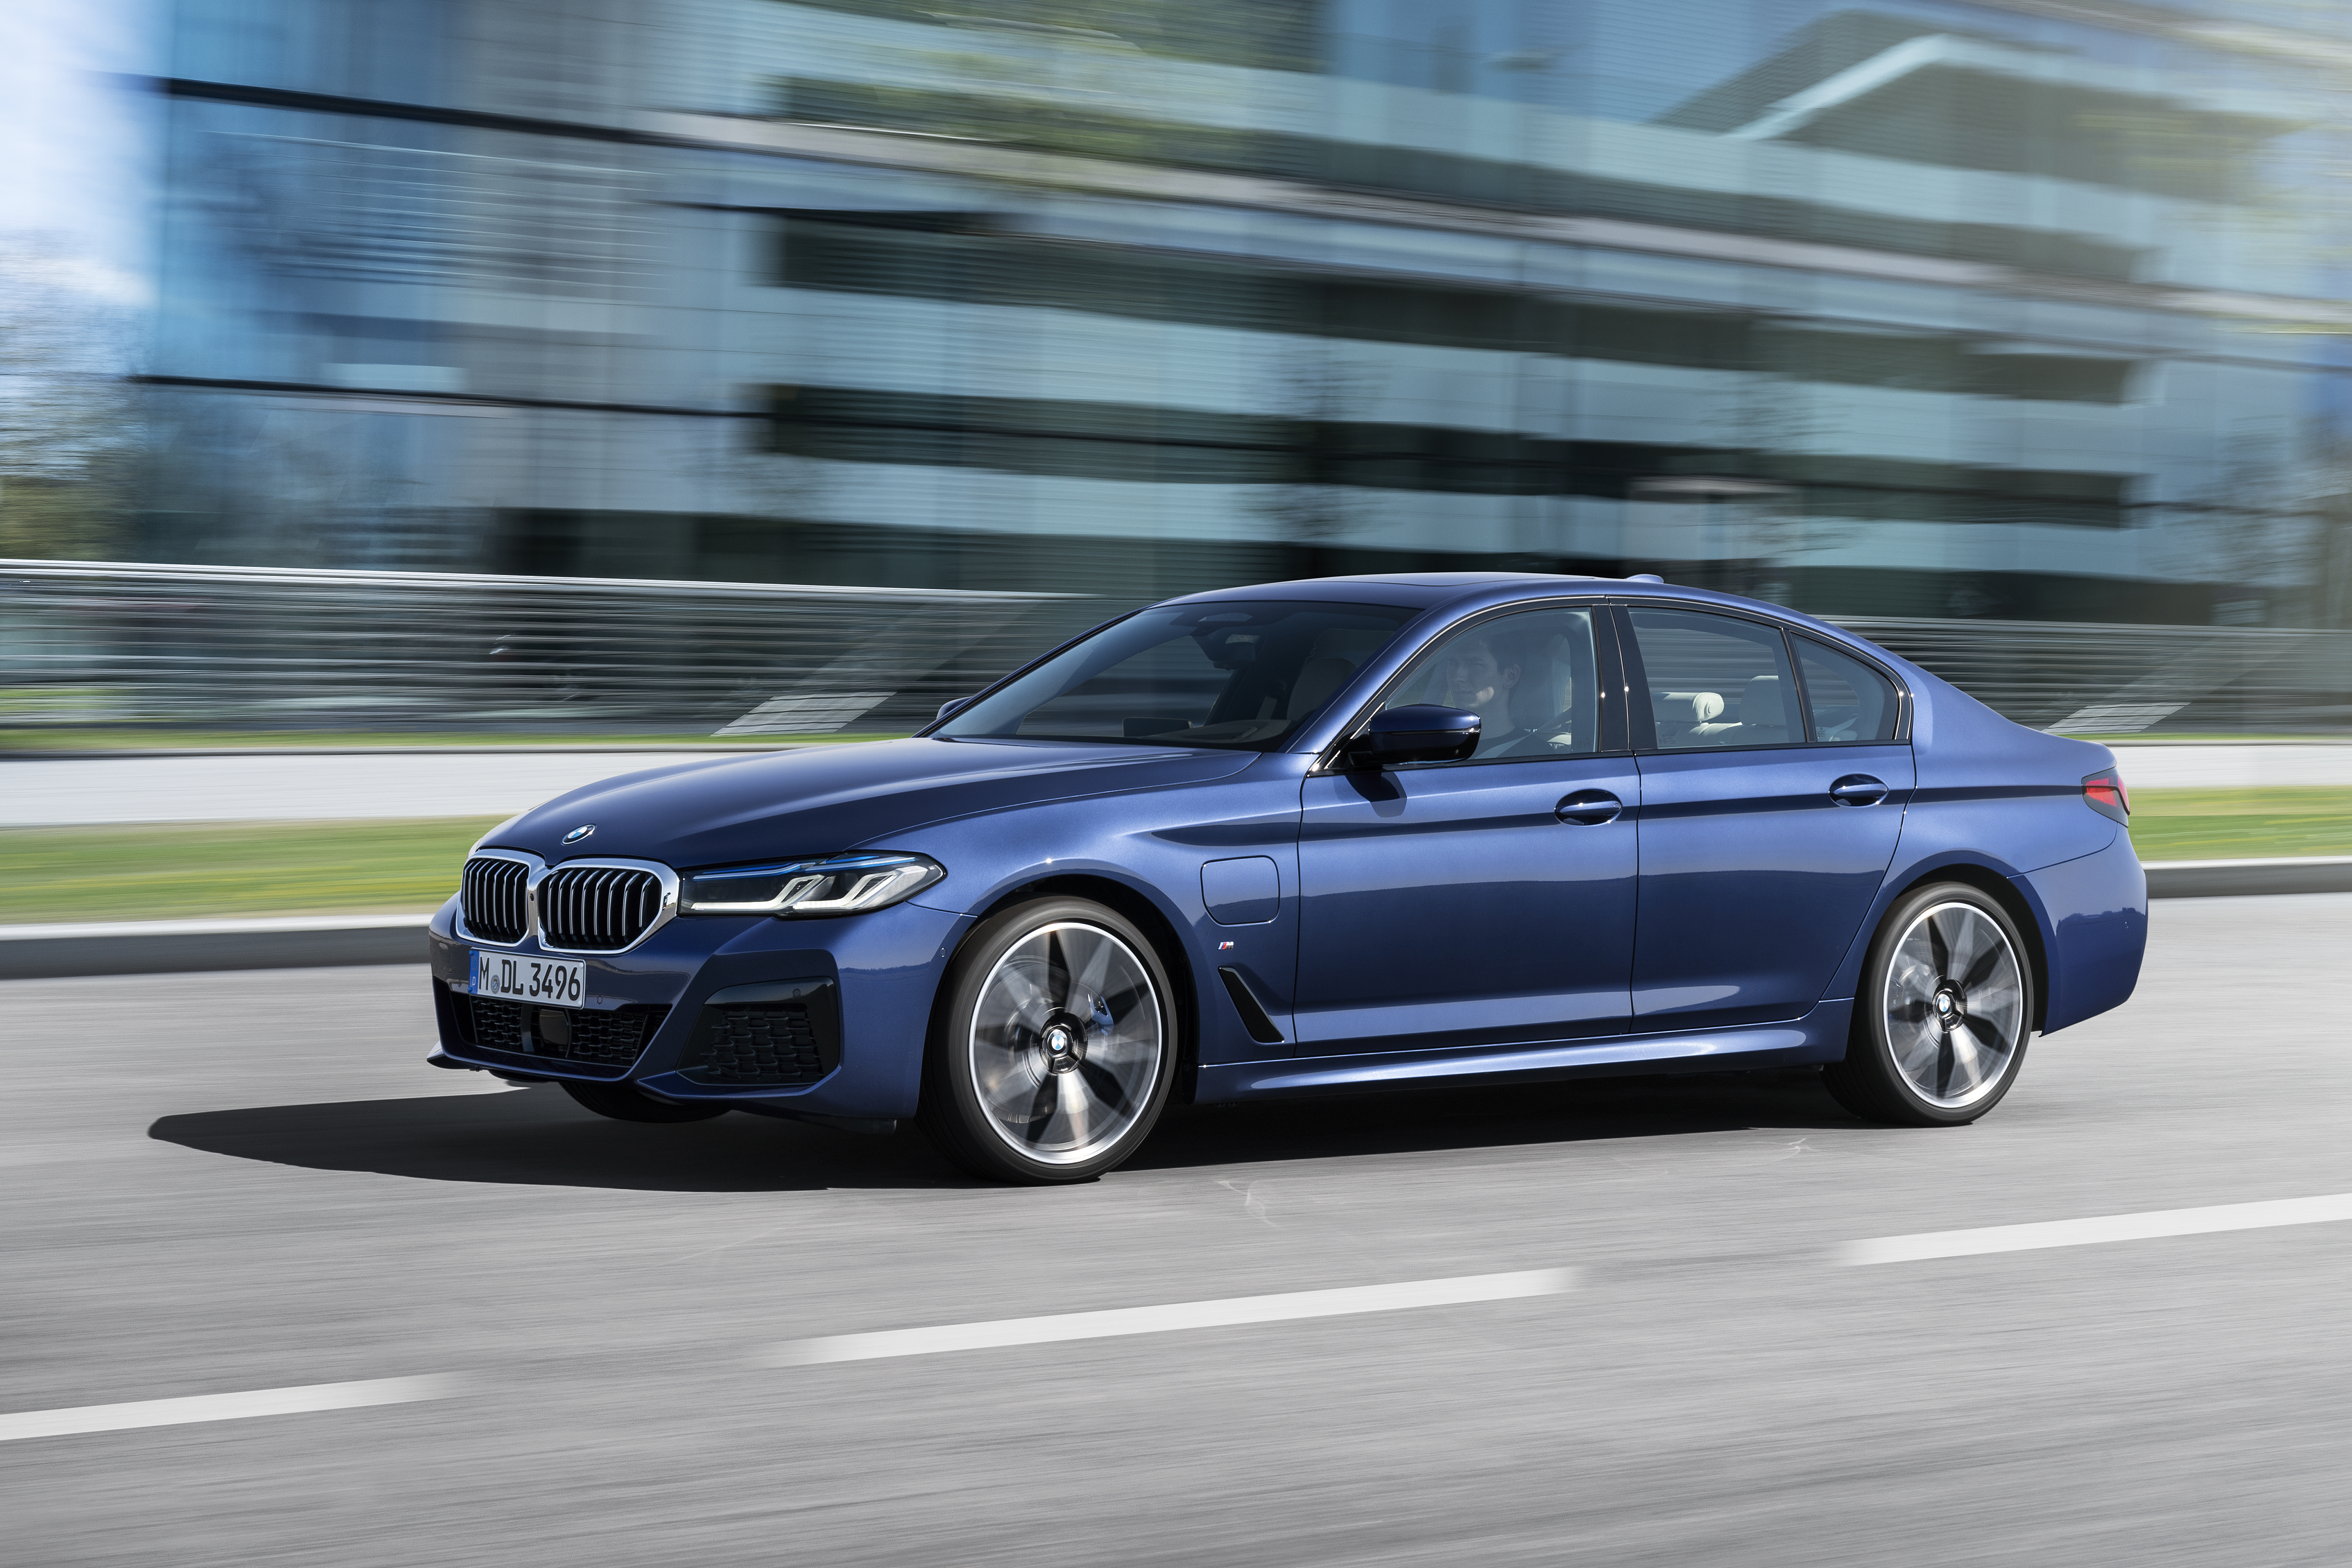 2021 bmw 5 series facelift revealed – g30 lci gets new